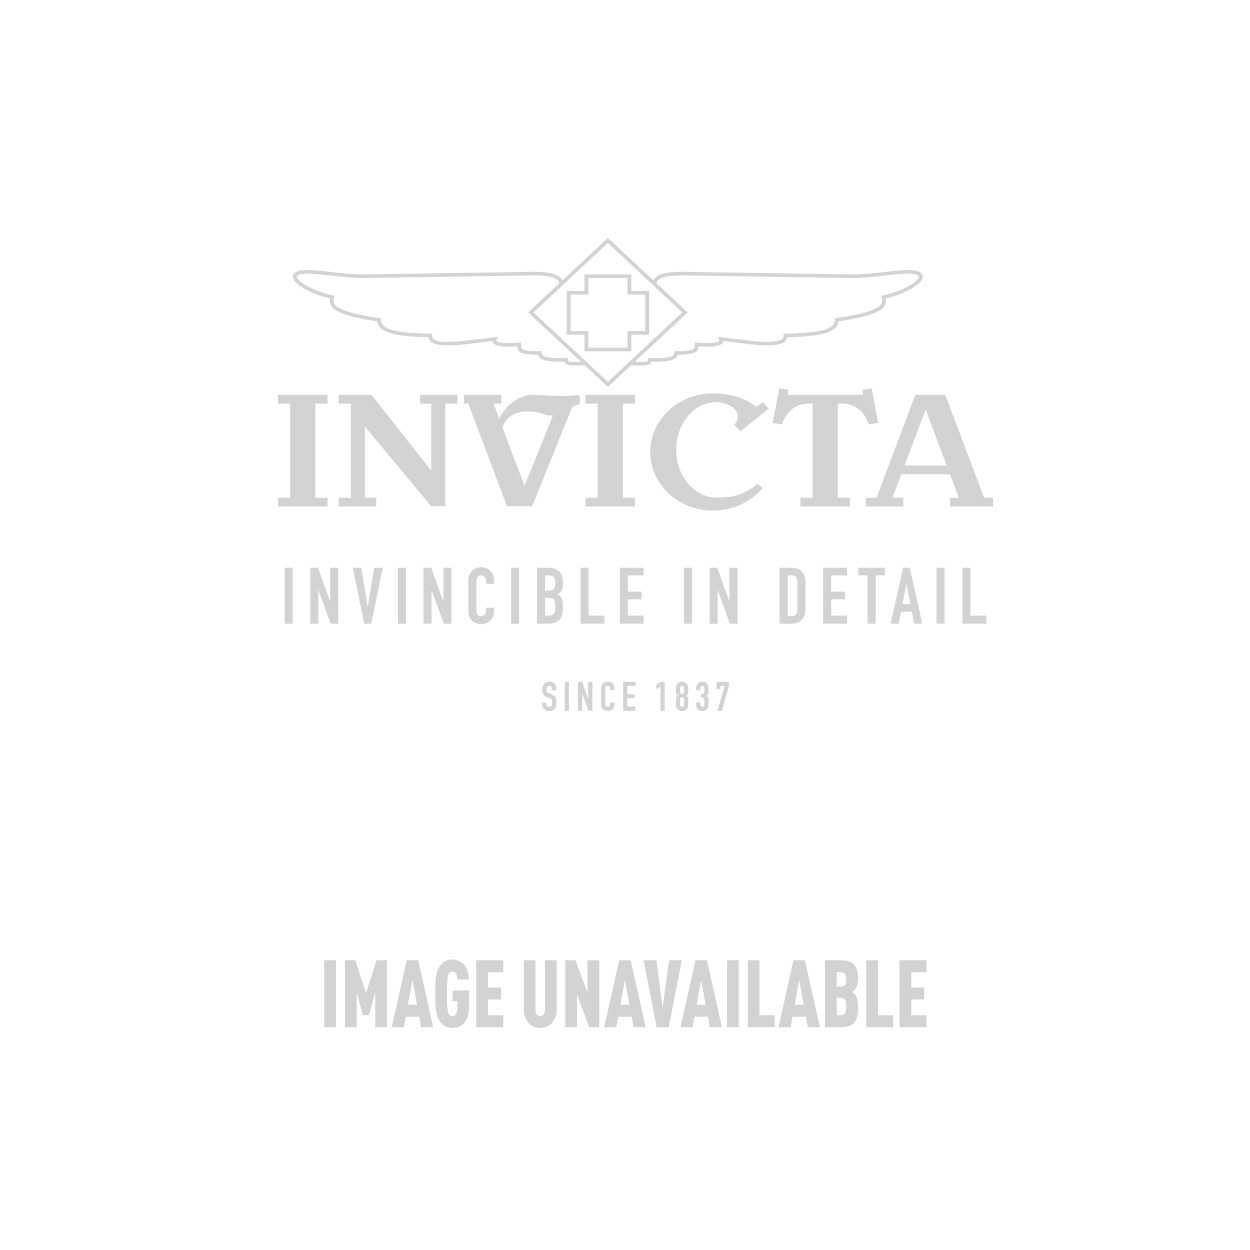 Invicta Vintage Swiss Movement Quartz Watch - Rose Gold case with Black tone Leather band - Model 6753